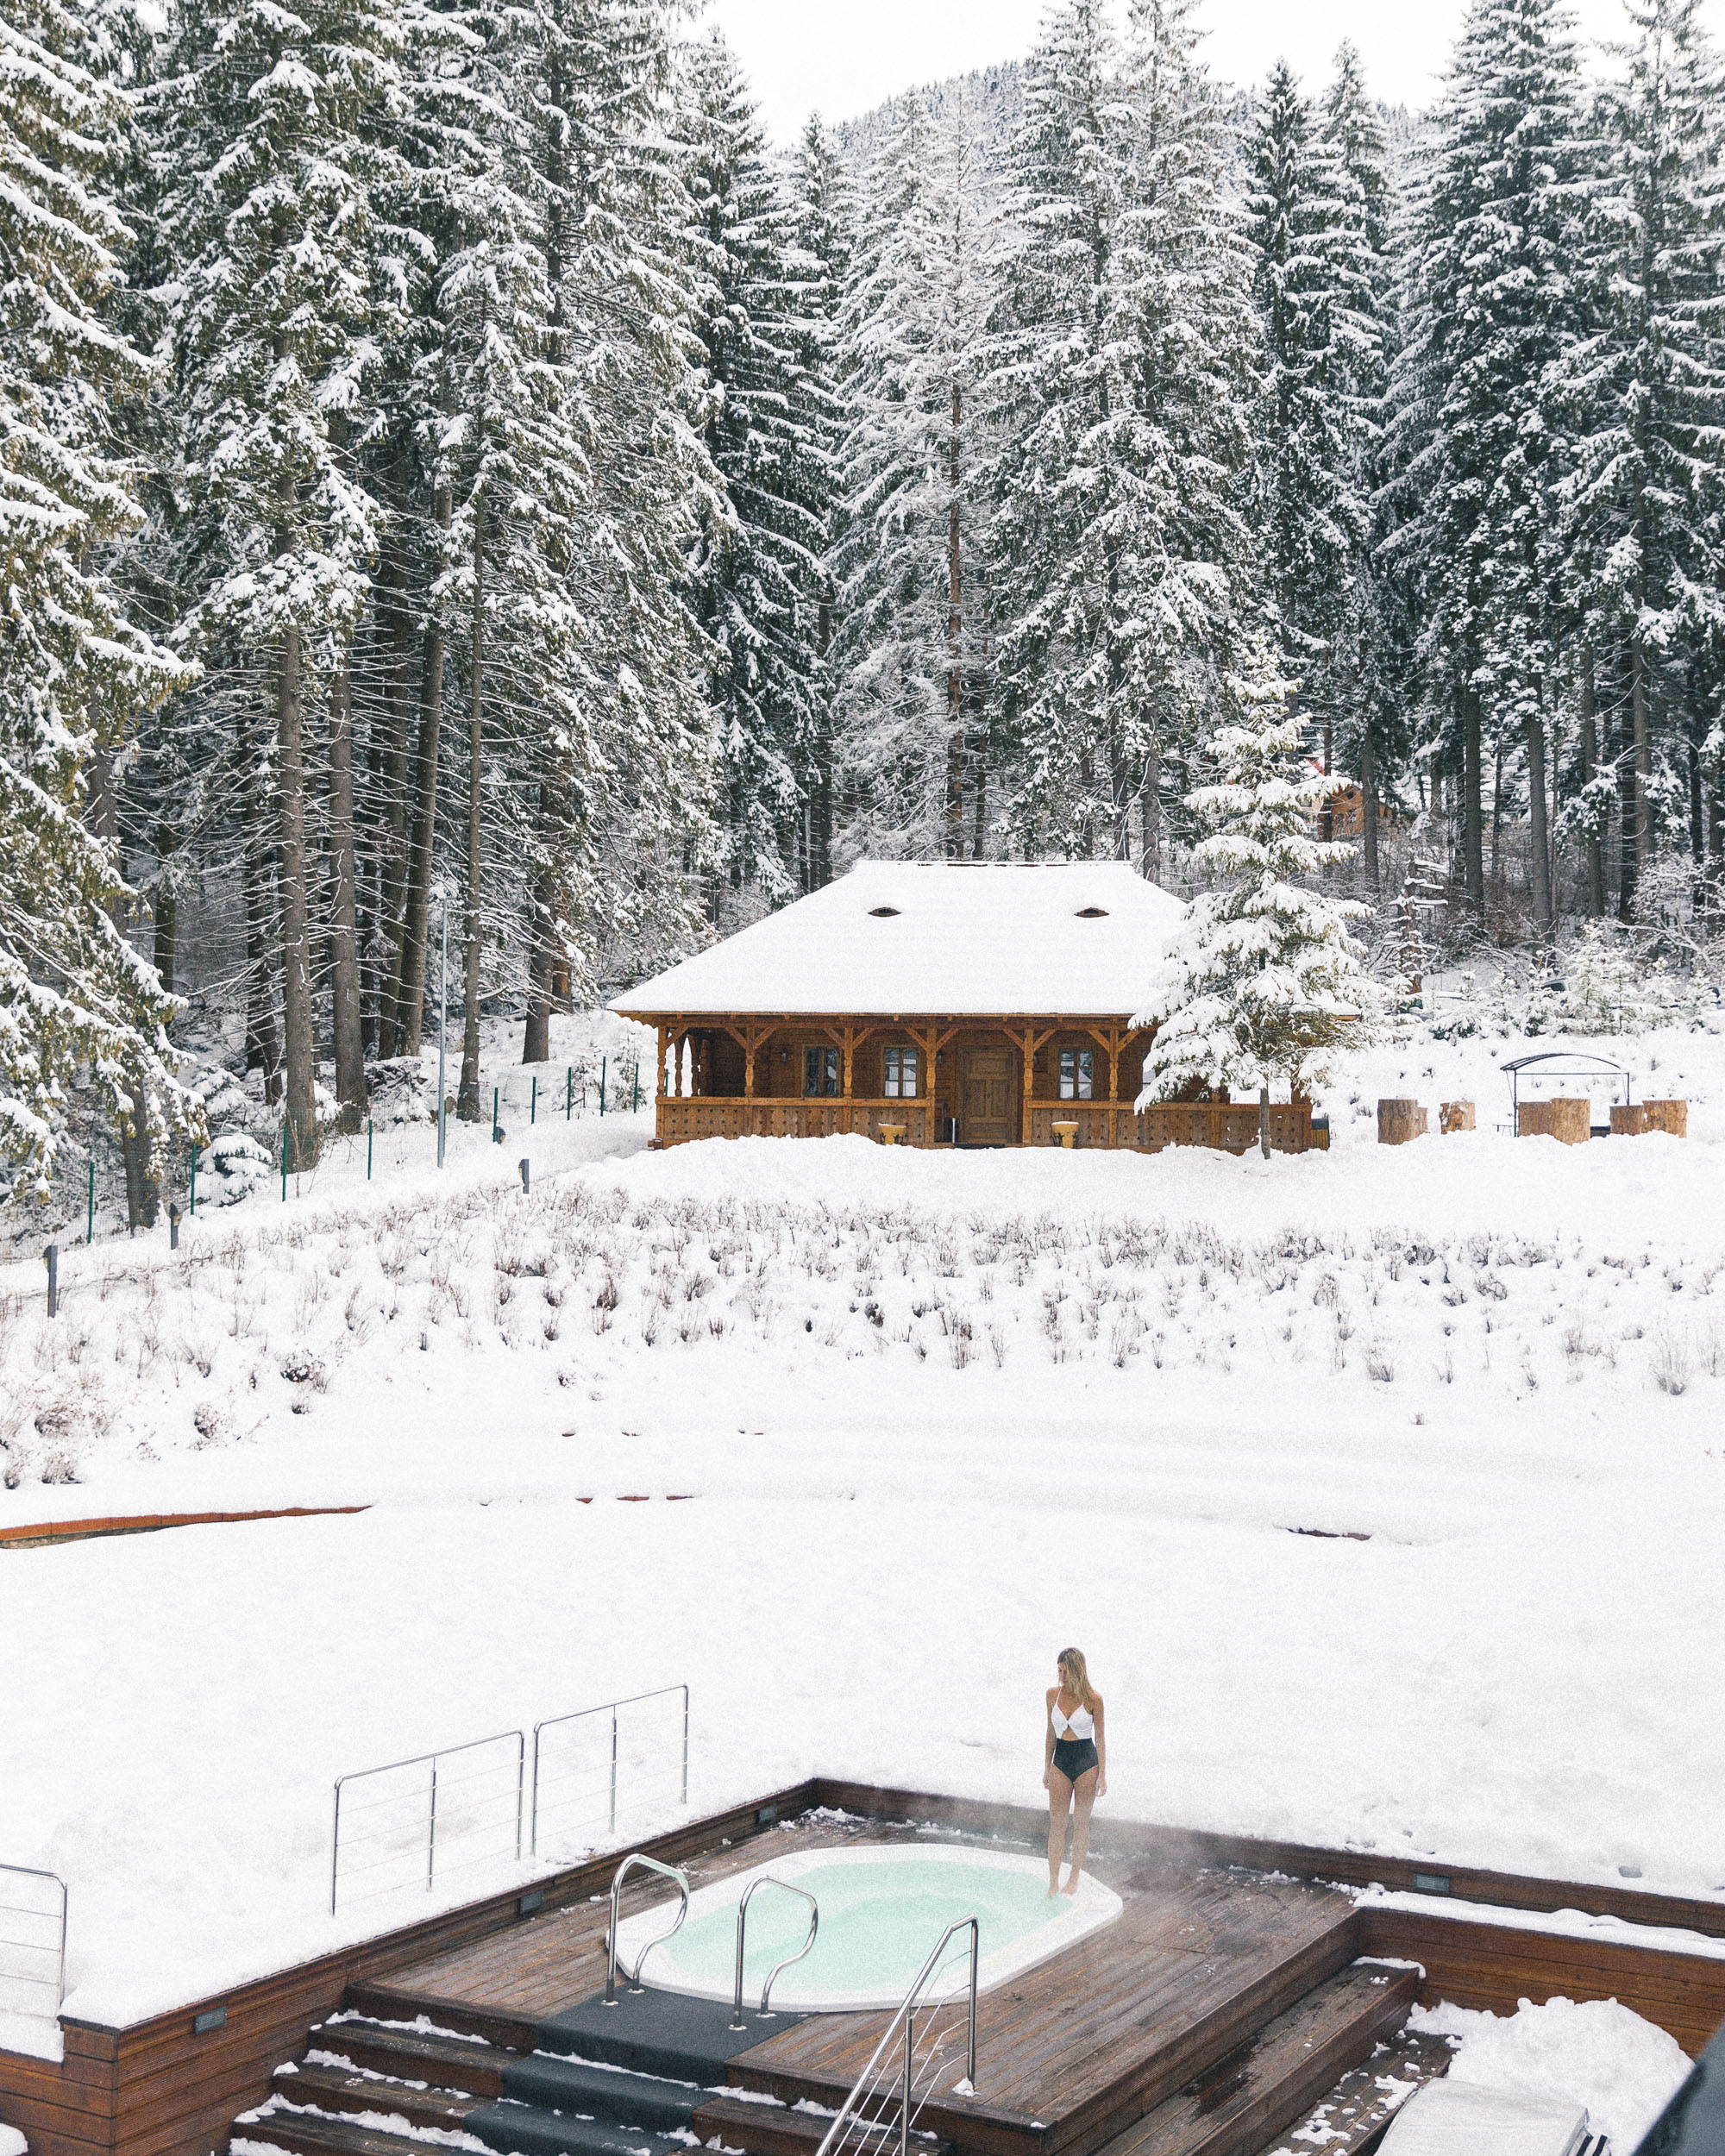 Outdoor spa in winter at Teleferic Grand Hotel in Poiana Brasov, Transylvania, Romania